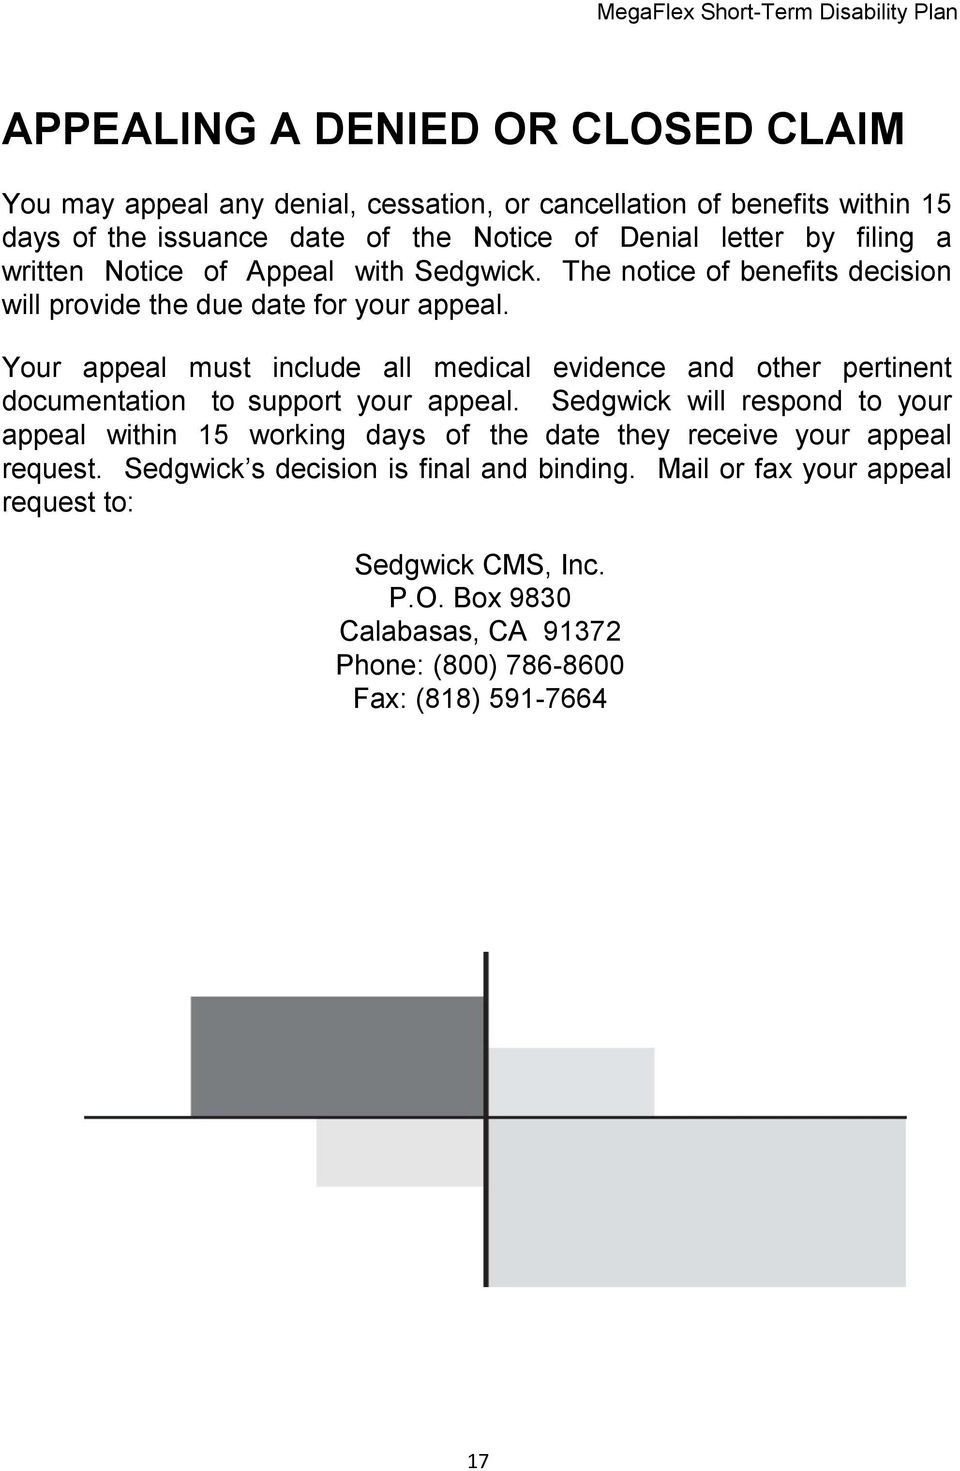 Your appeal must include all medical evidence and other pertinent documentation to support your appeal.